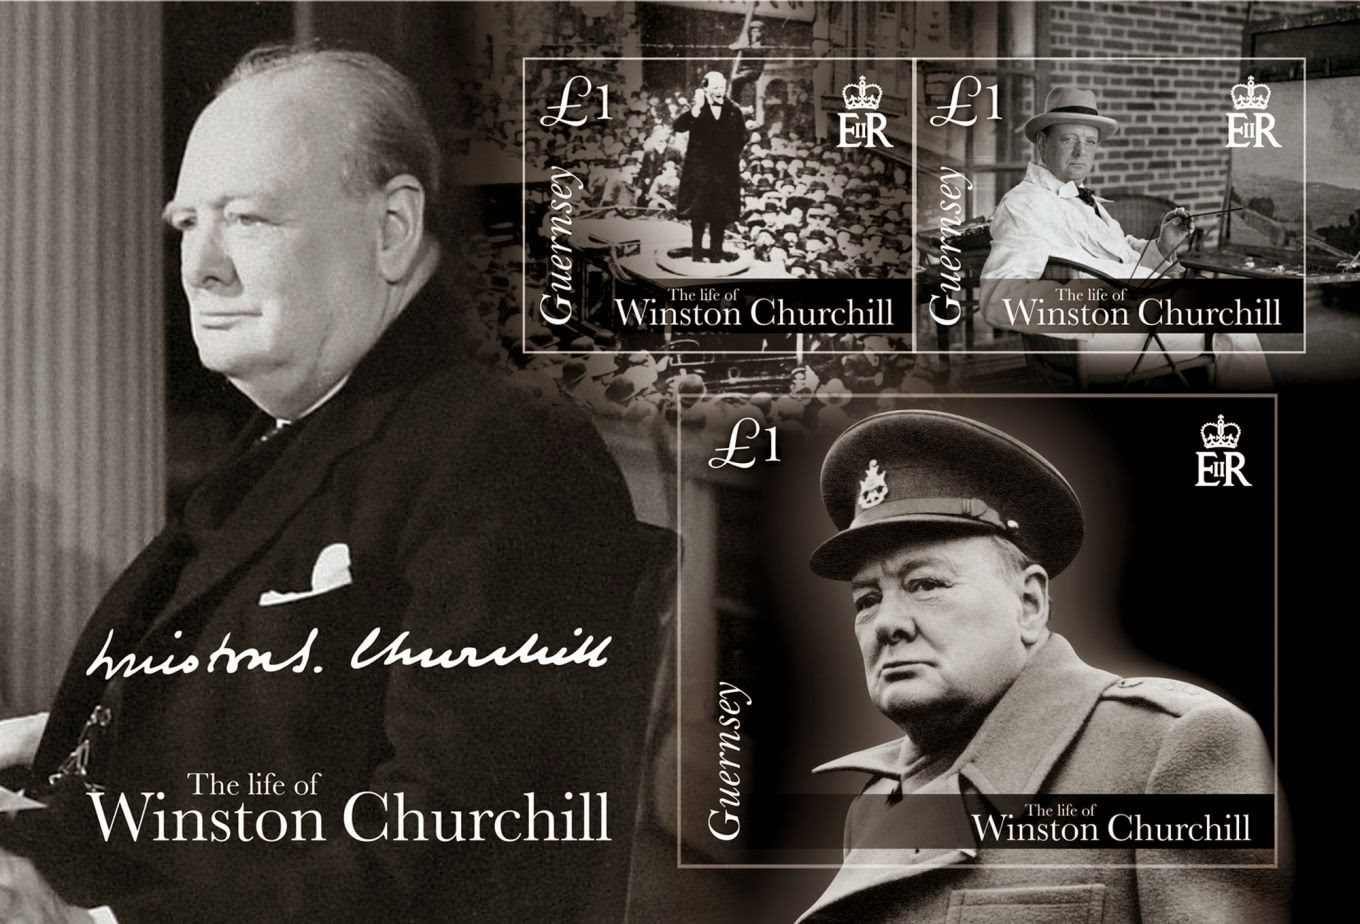 herald dick magazine hommage winston churchill. Black Bedroom Furniture Sets. Home Design Ideas